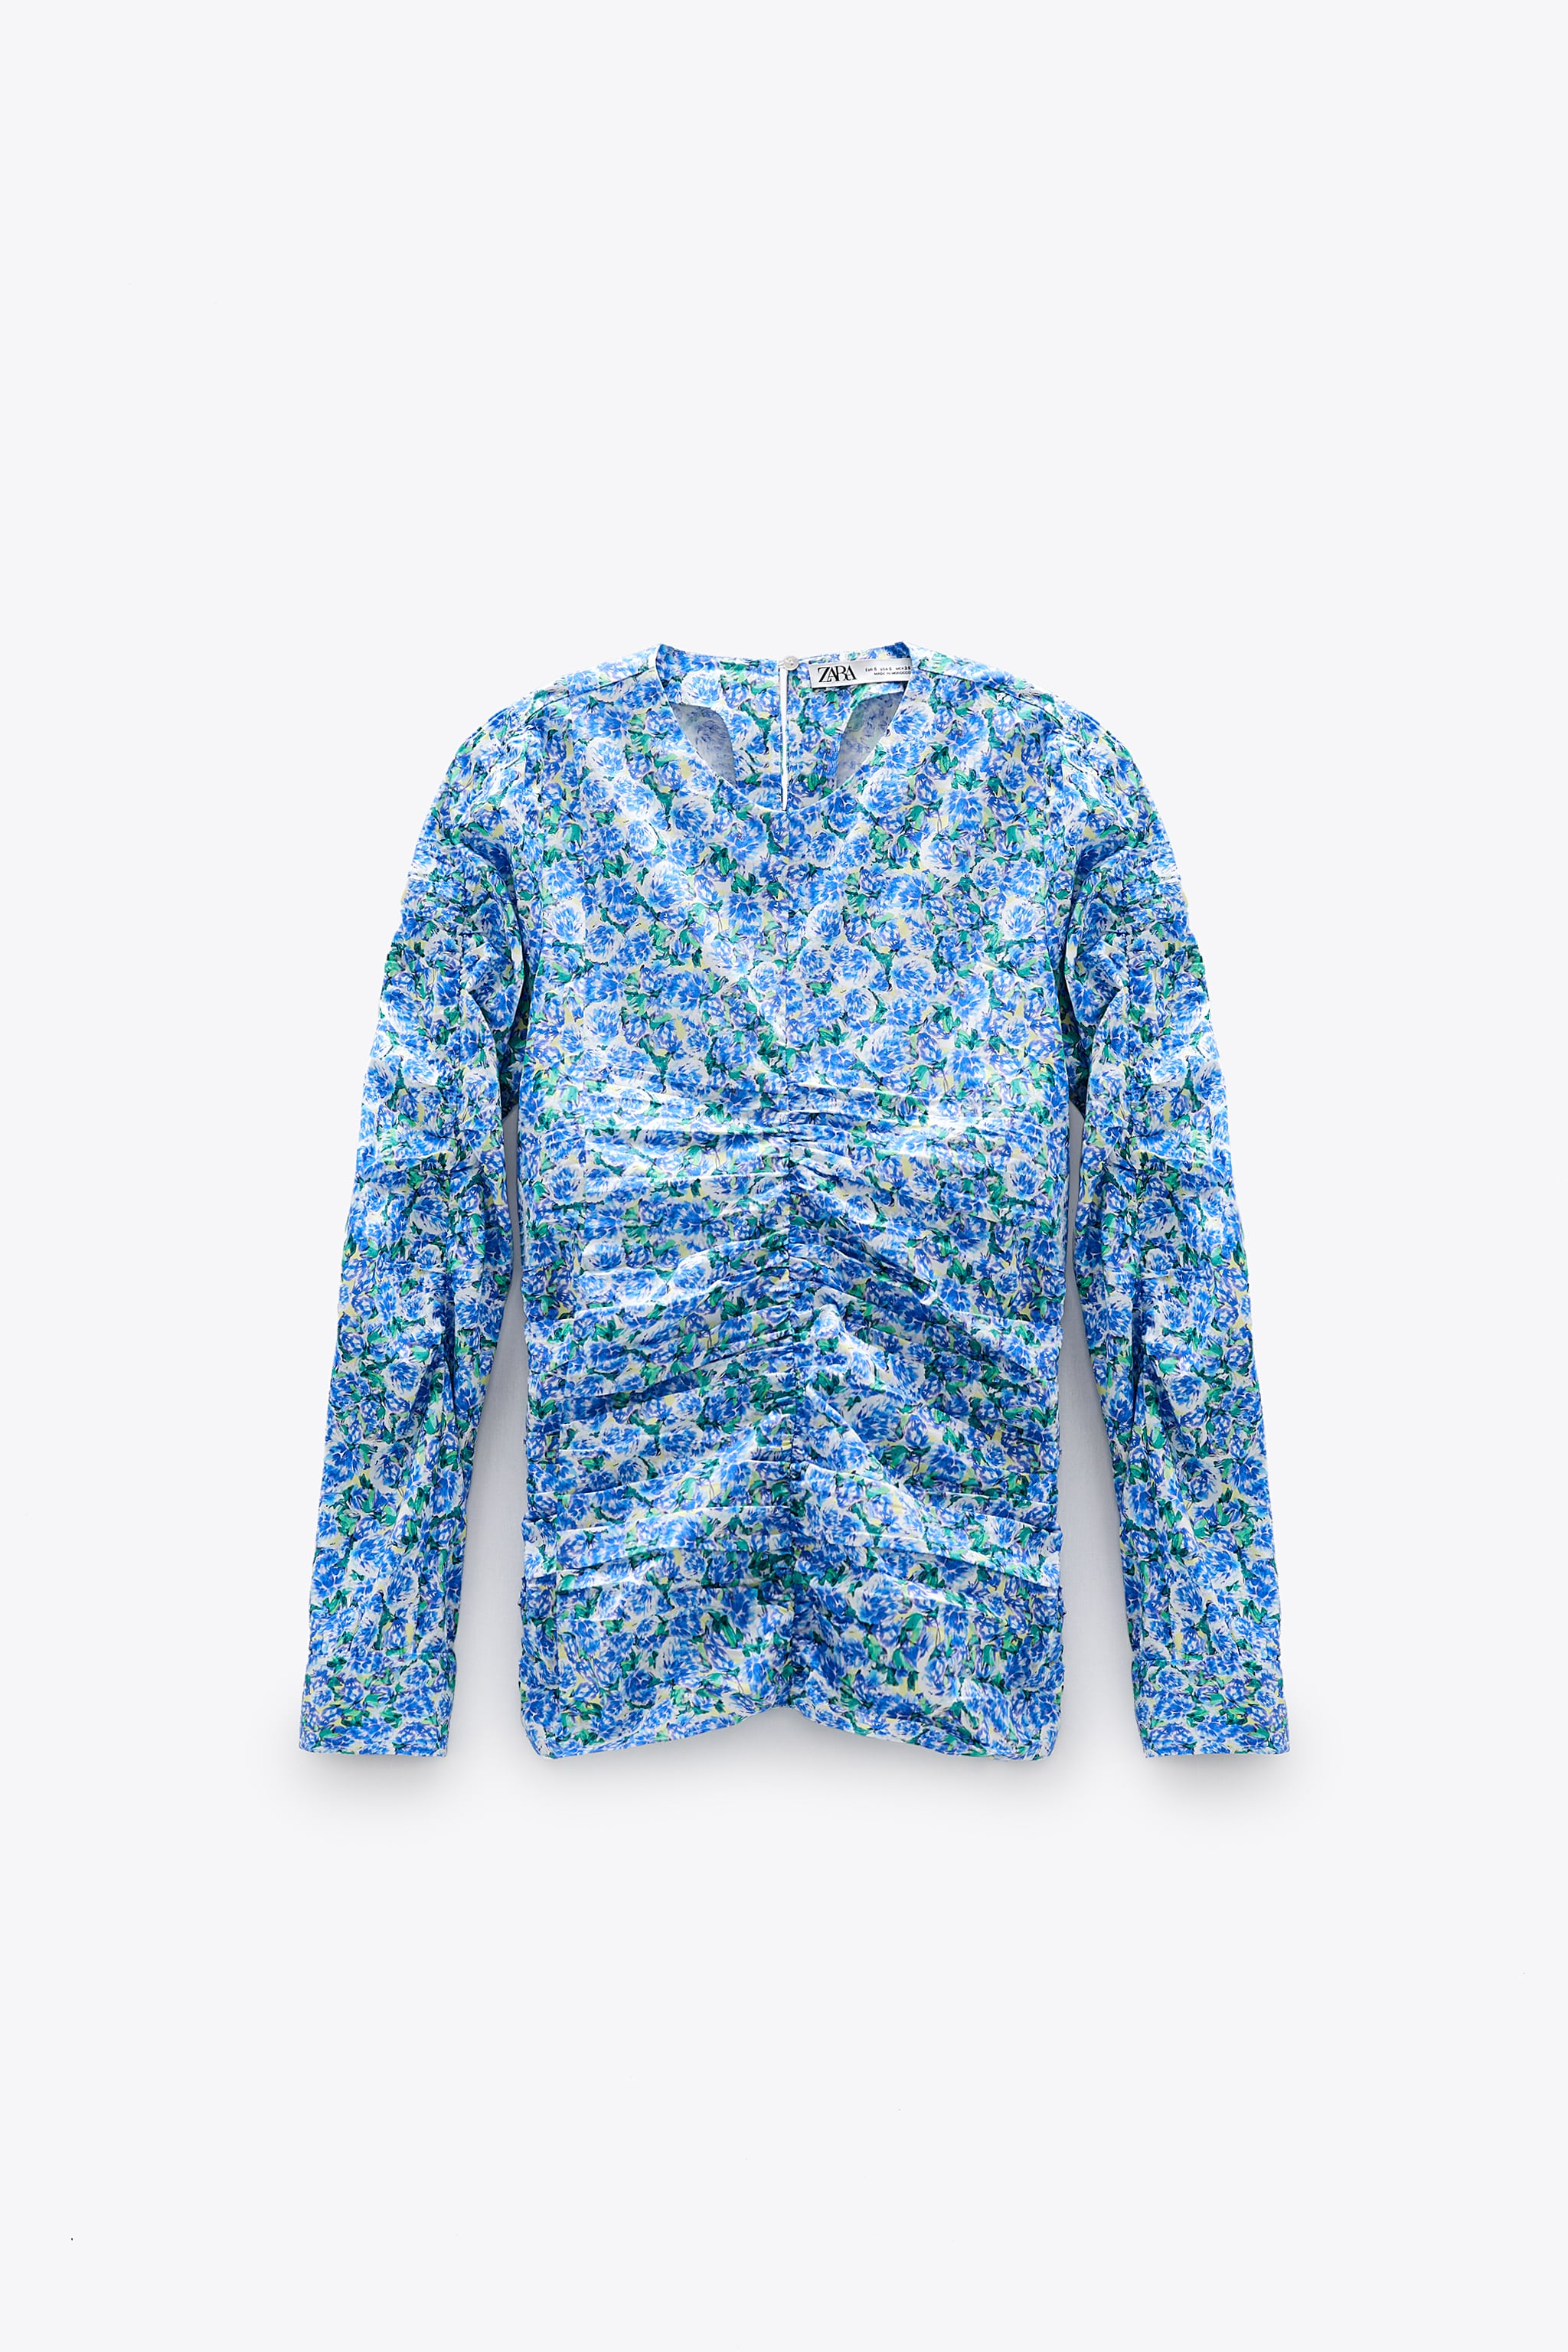 PRINTED BLOUSE WITH GATHERED DETAILS zara